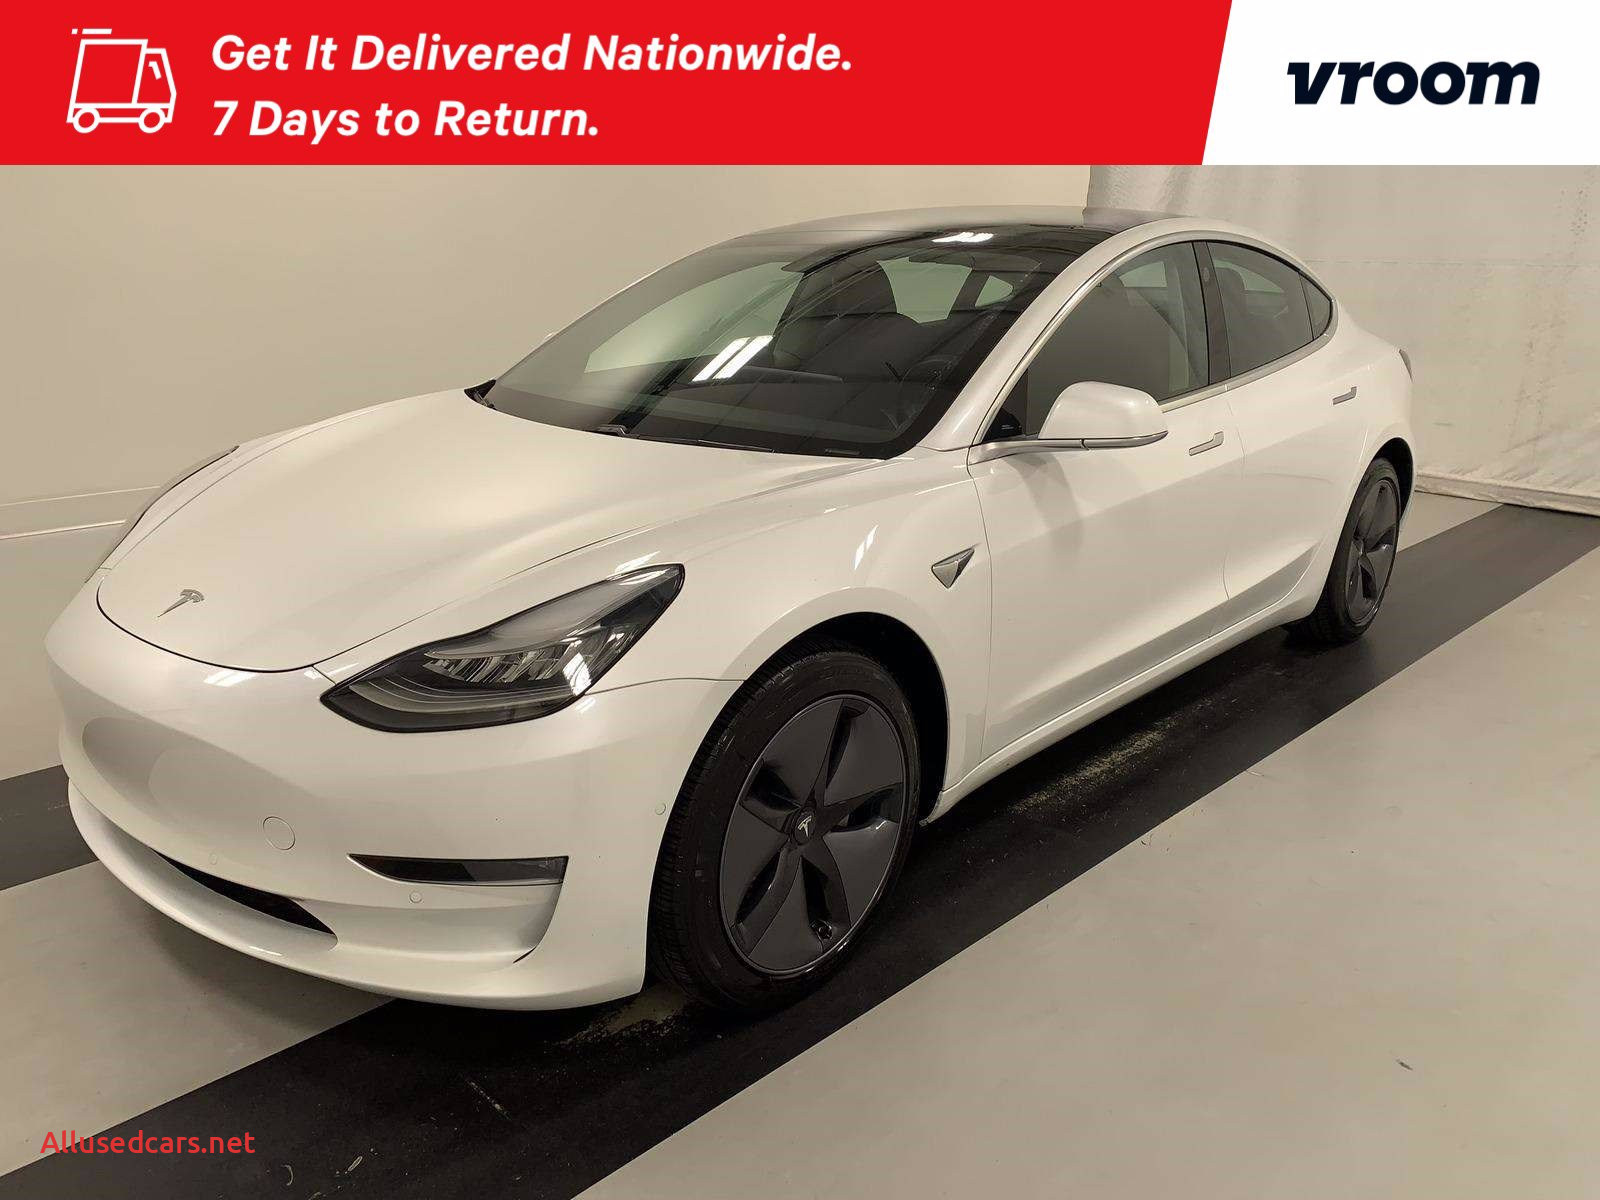 Used Cars for Sale Kent Lovely Used Tesla Cars for Sale In Kent Wa with S Autotrader